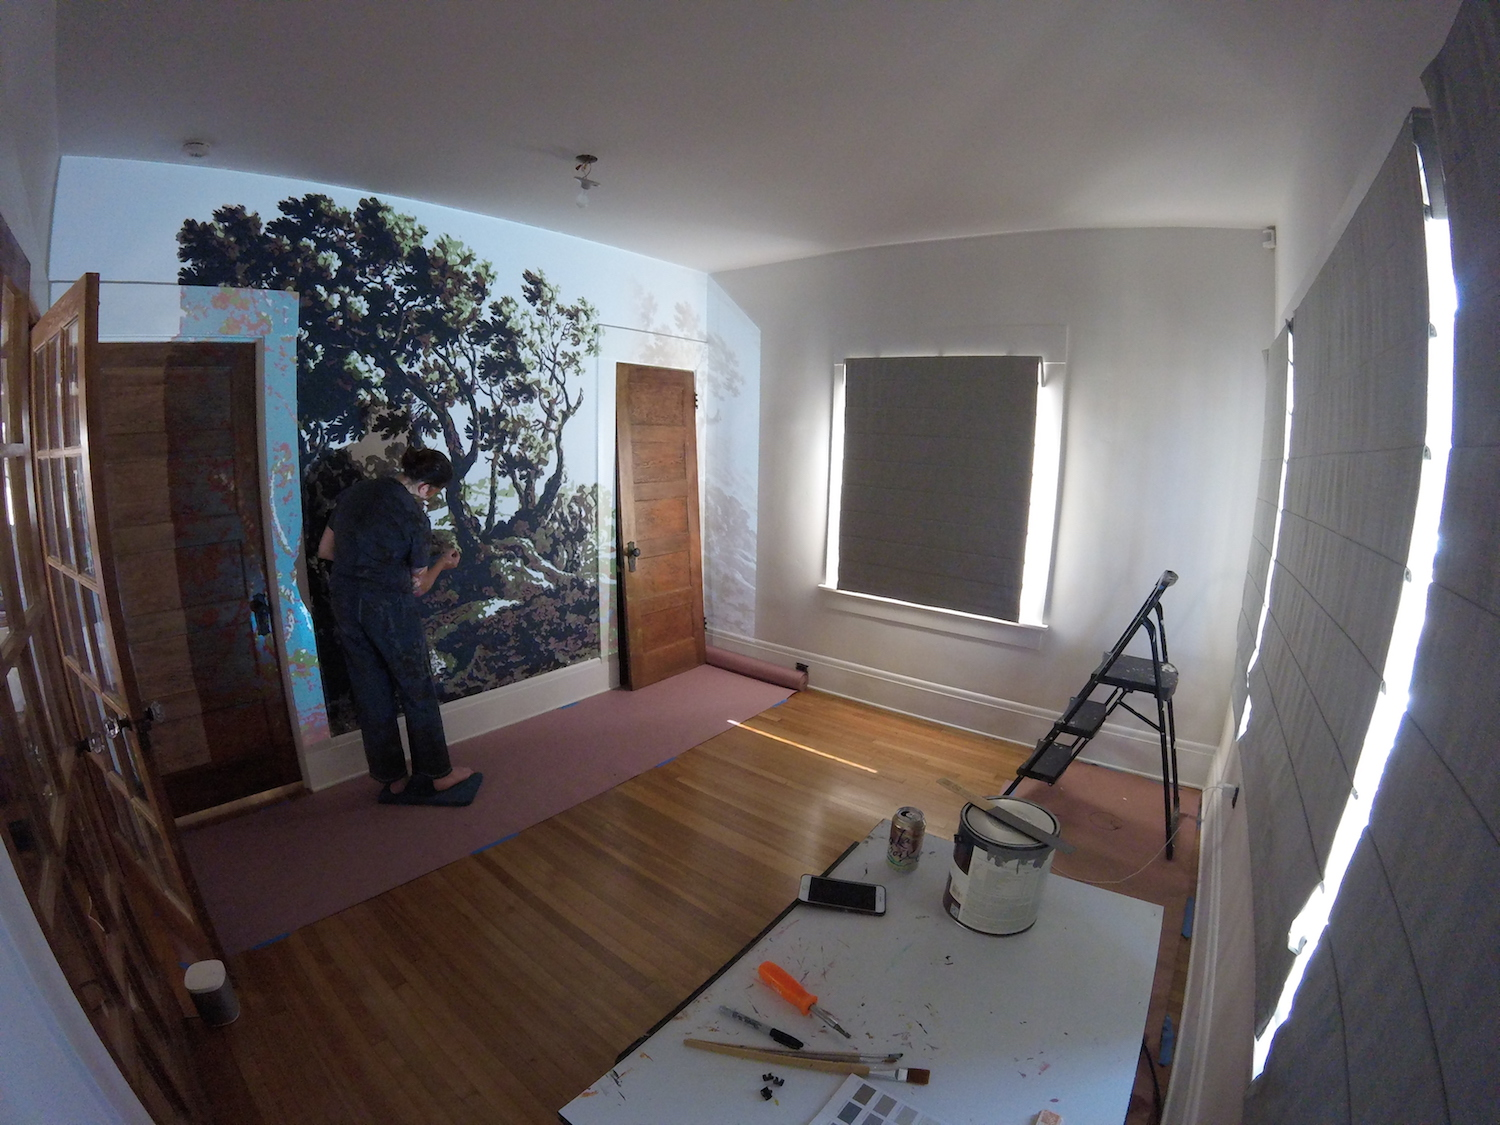 using a projector to paint a mural at home